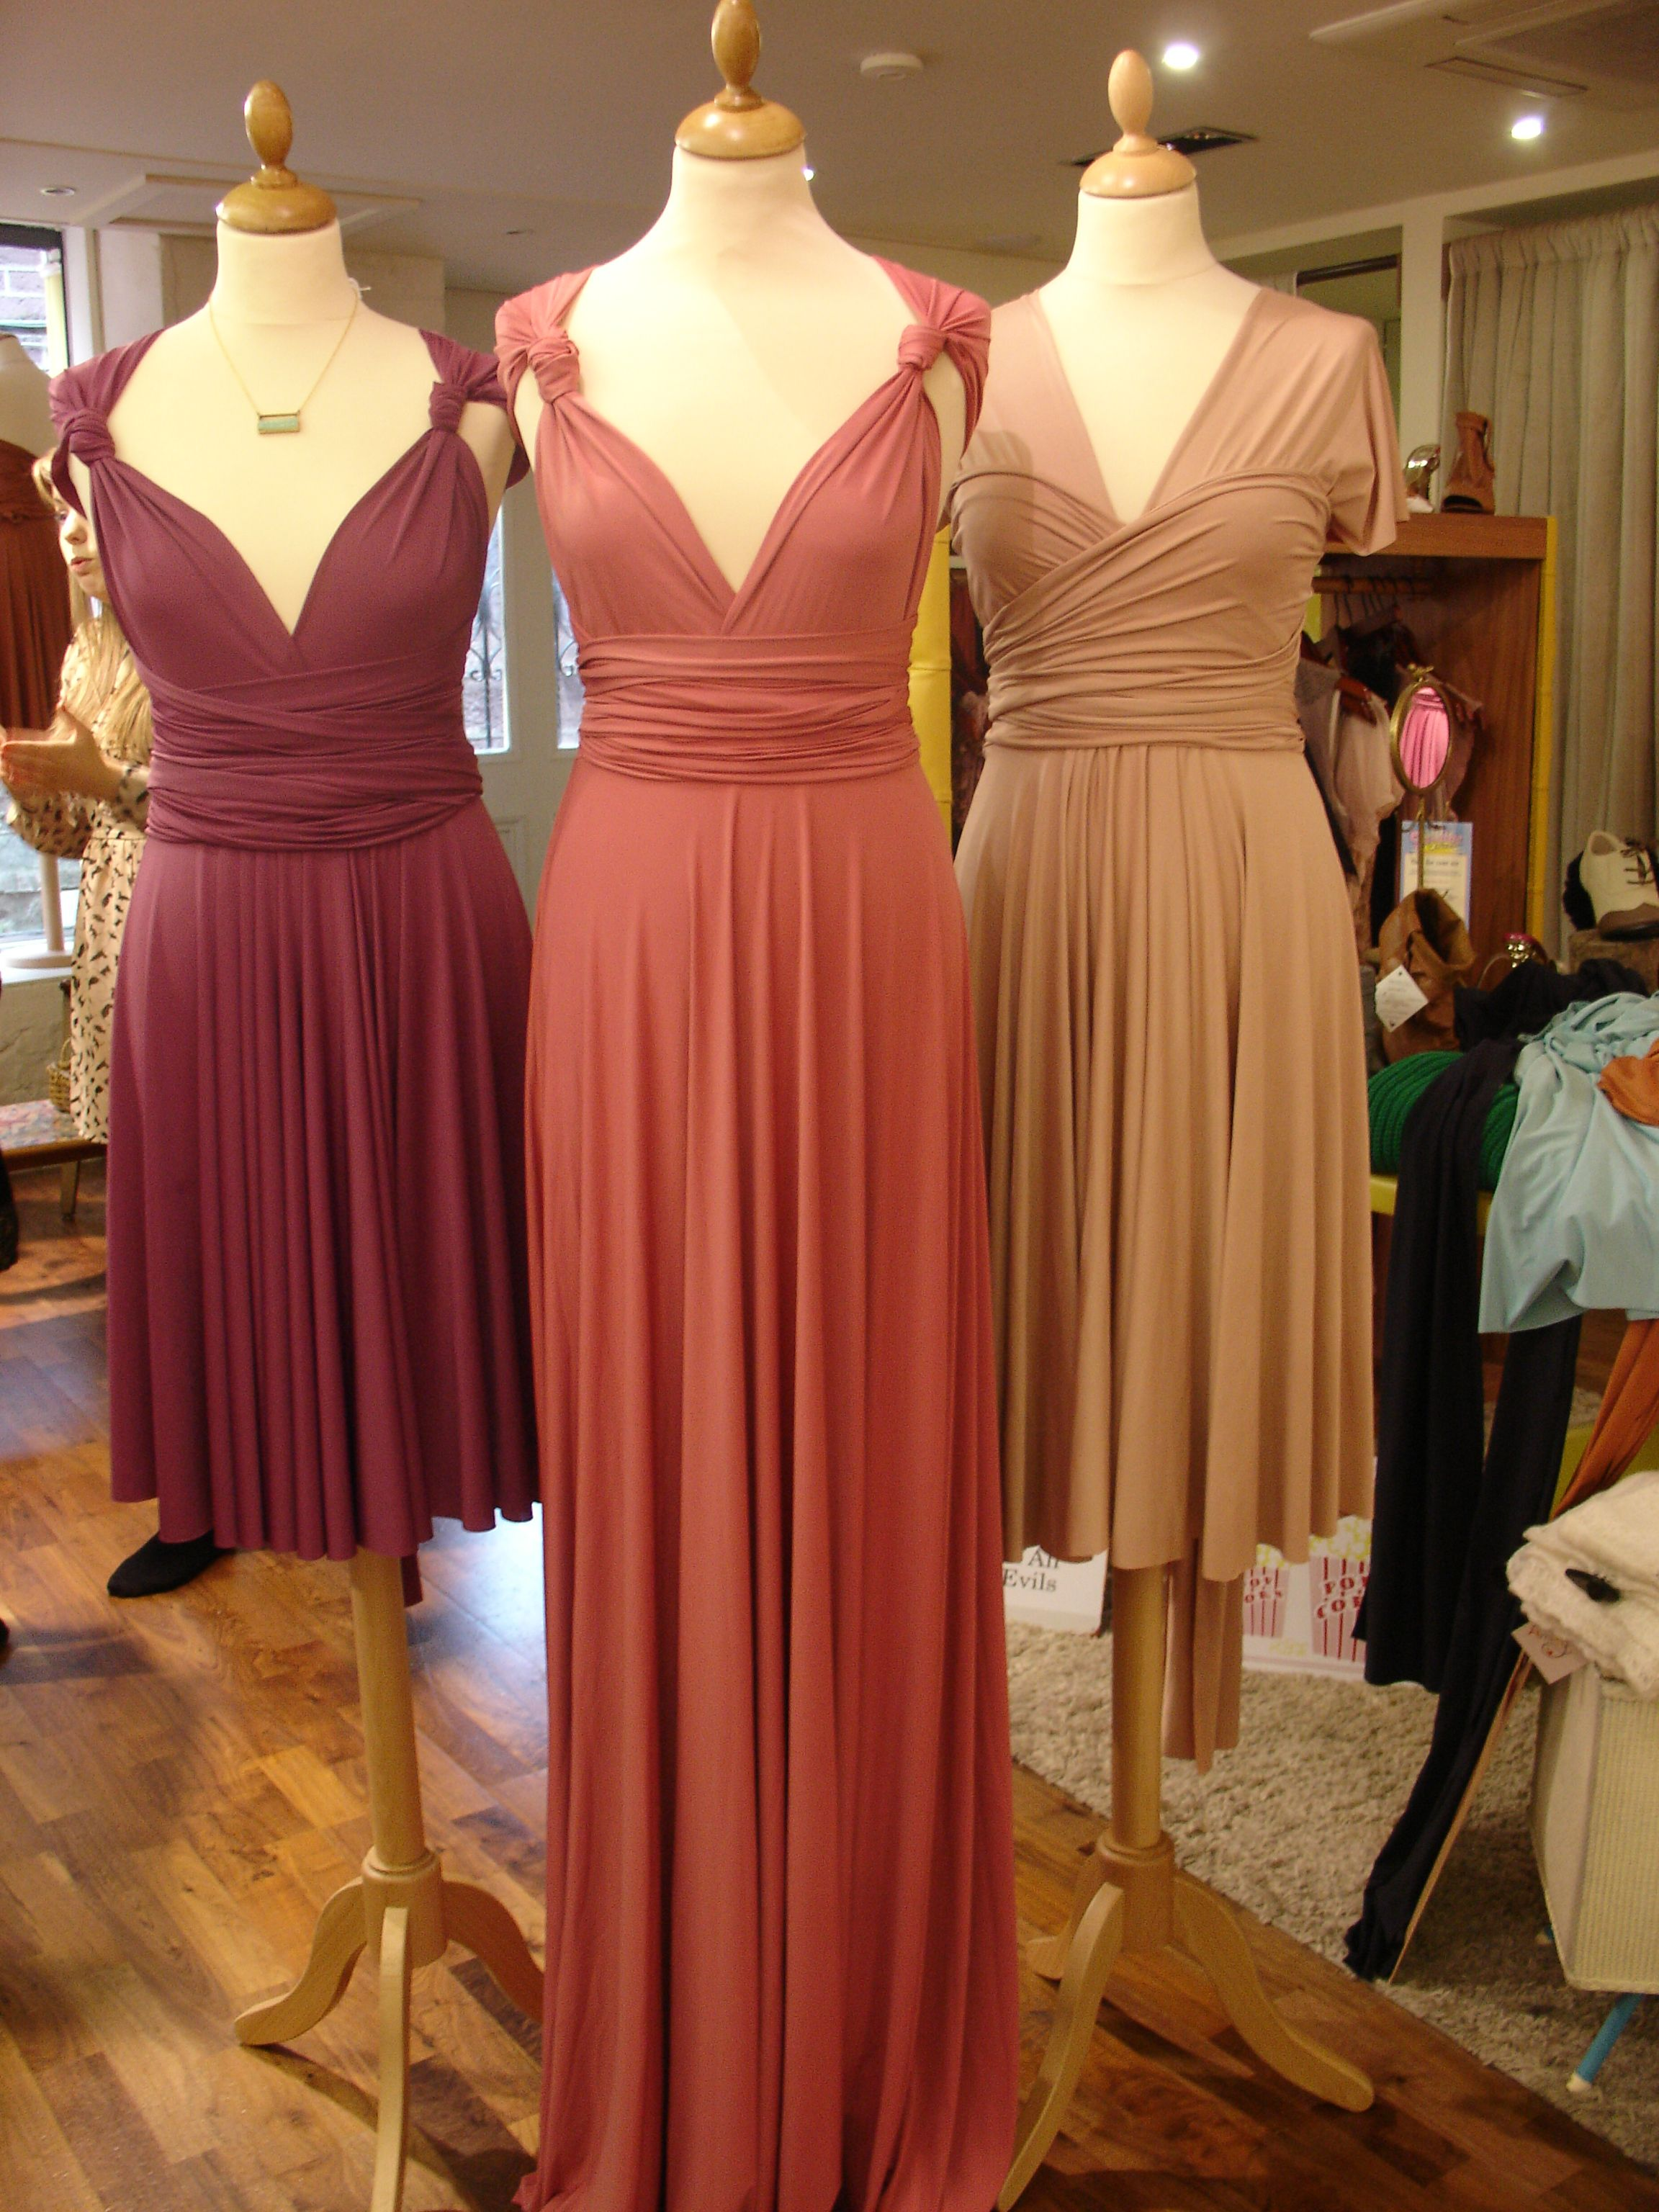 Amity Cork Amityireland Dress Dresses Bridesmaid Bridesmaid